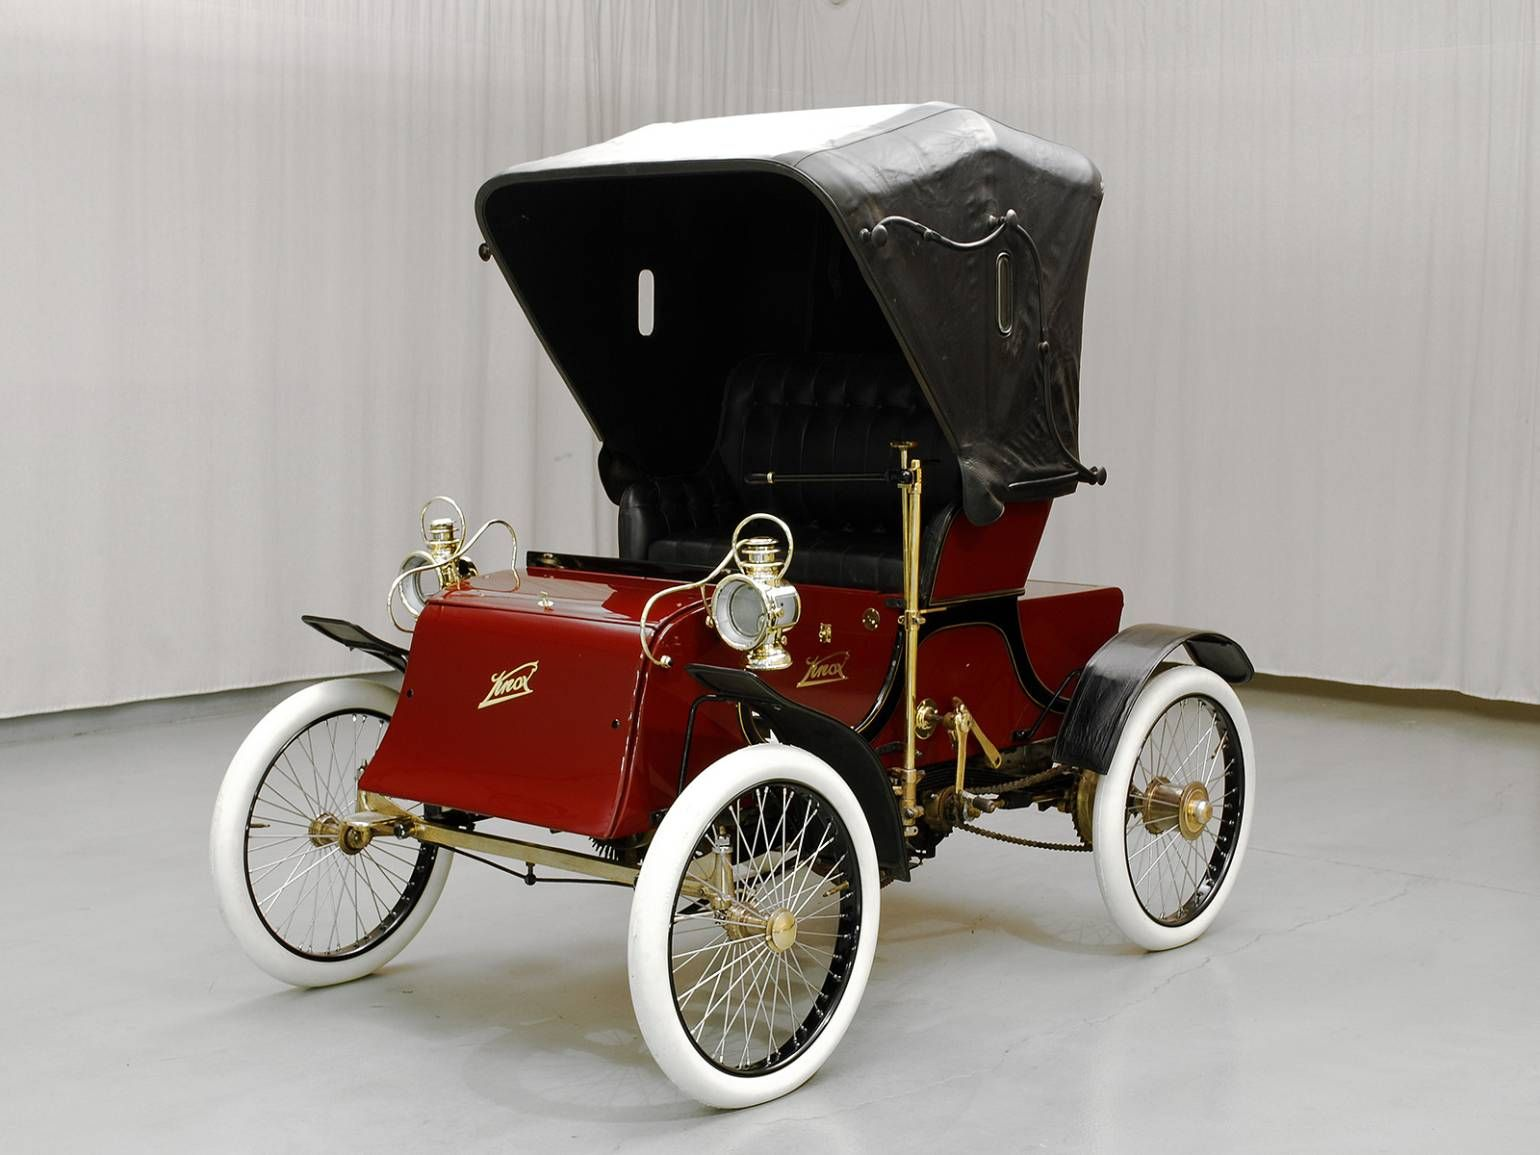 1902+Knox | Cars | Pinterest | Cars and Vehicle